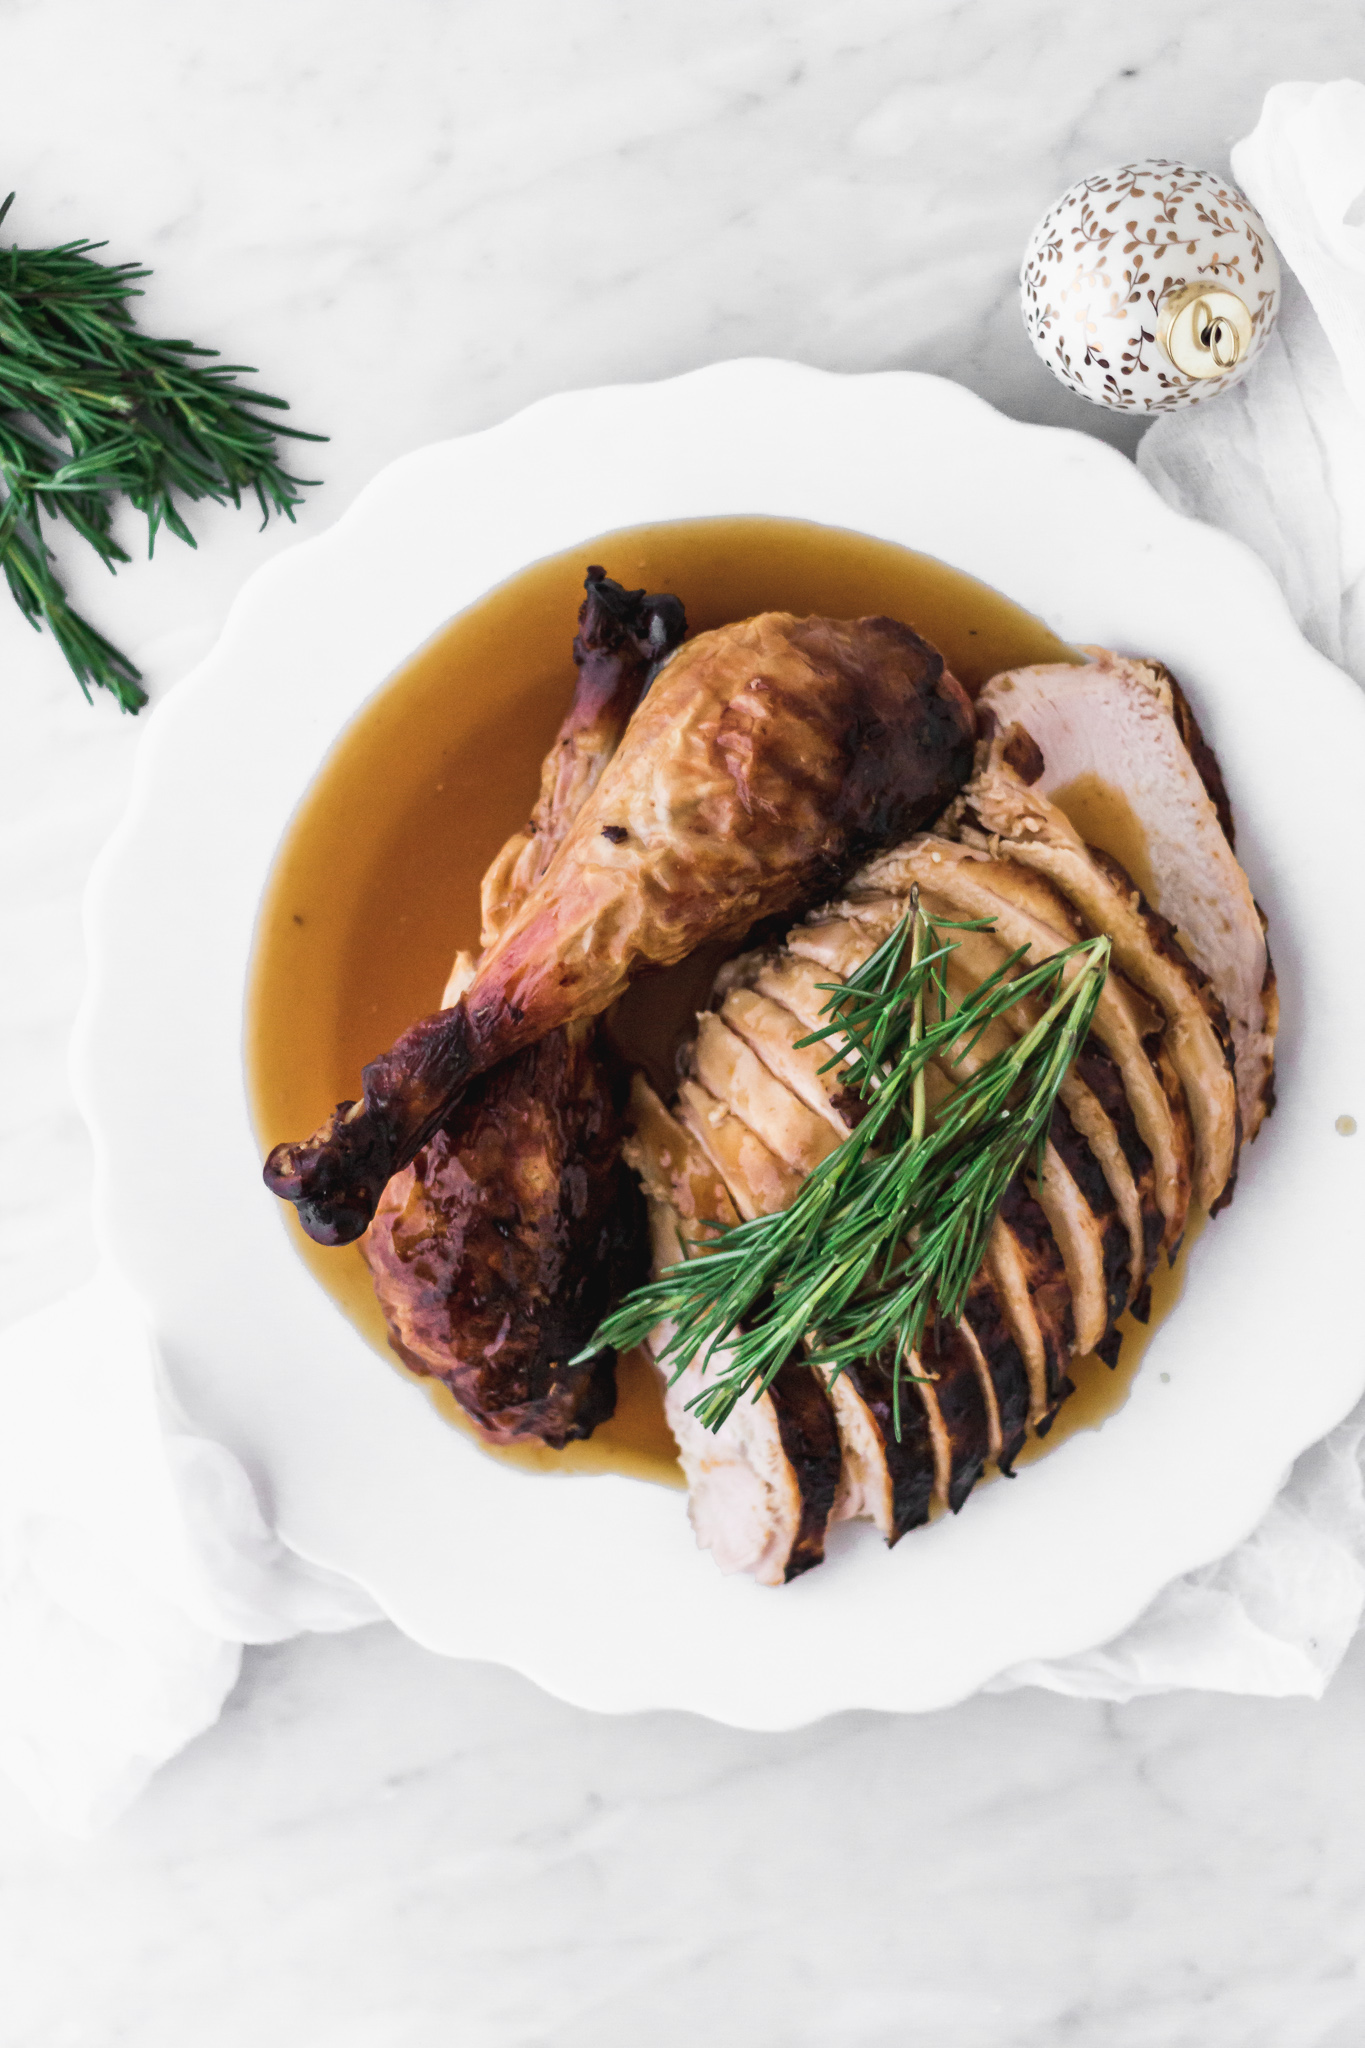 Roasted turkey with honey and citrus